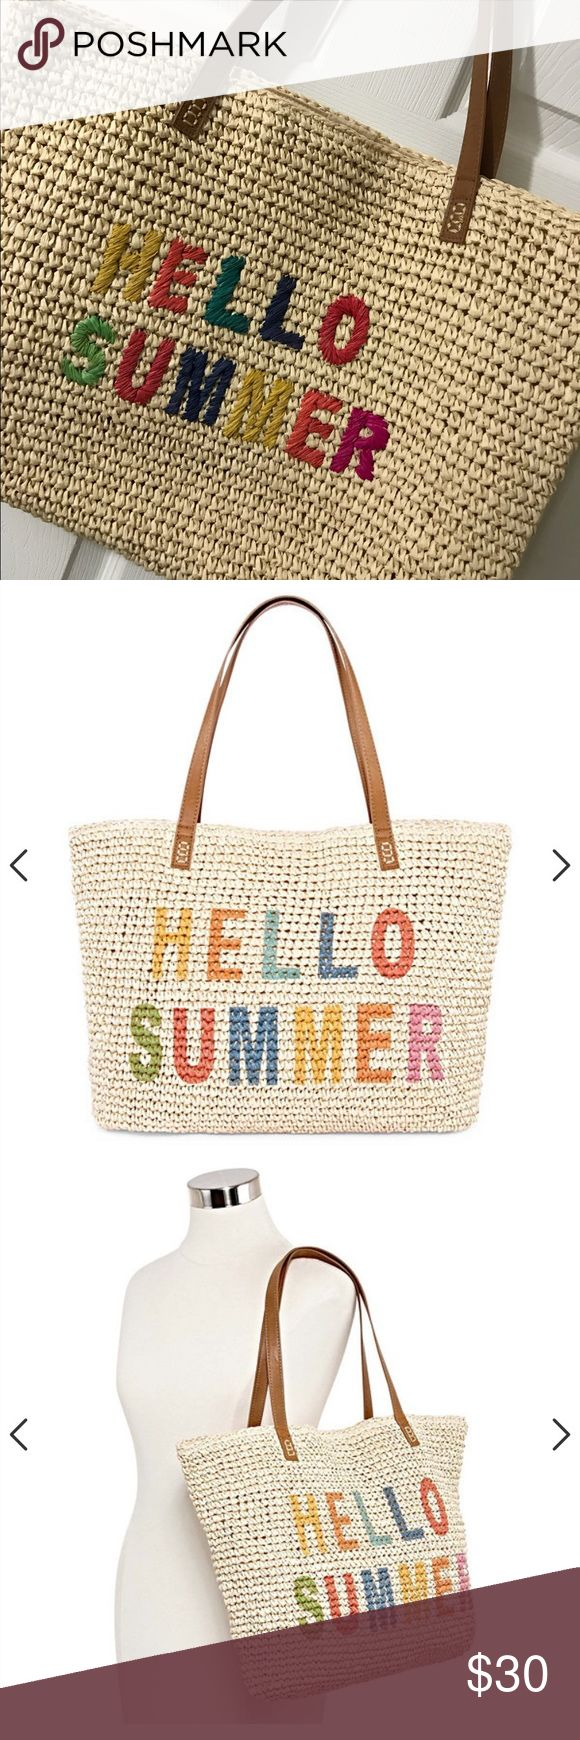 ⚡️Flash Sale⚡️Hello Summer Tote Bag Hello Summer Straw Tote Bag from JC Penney, New W/O Tags. ☀️🌴🌊 jcpenney Bags Totes